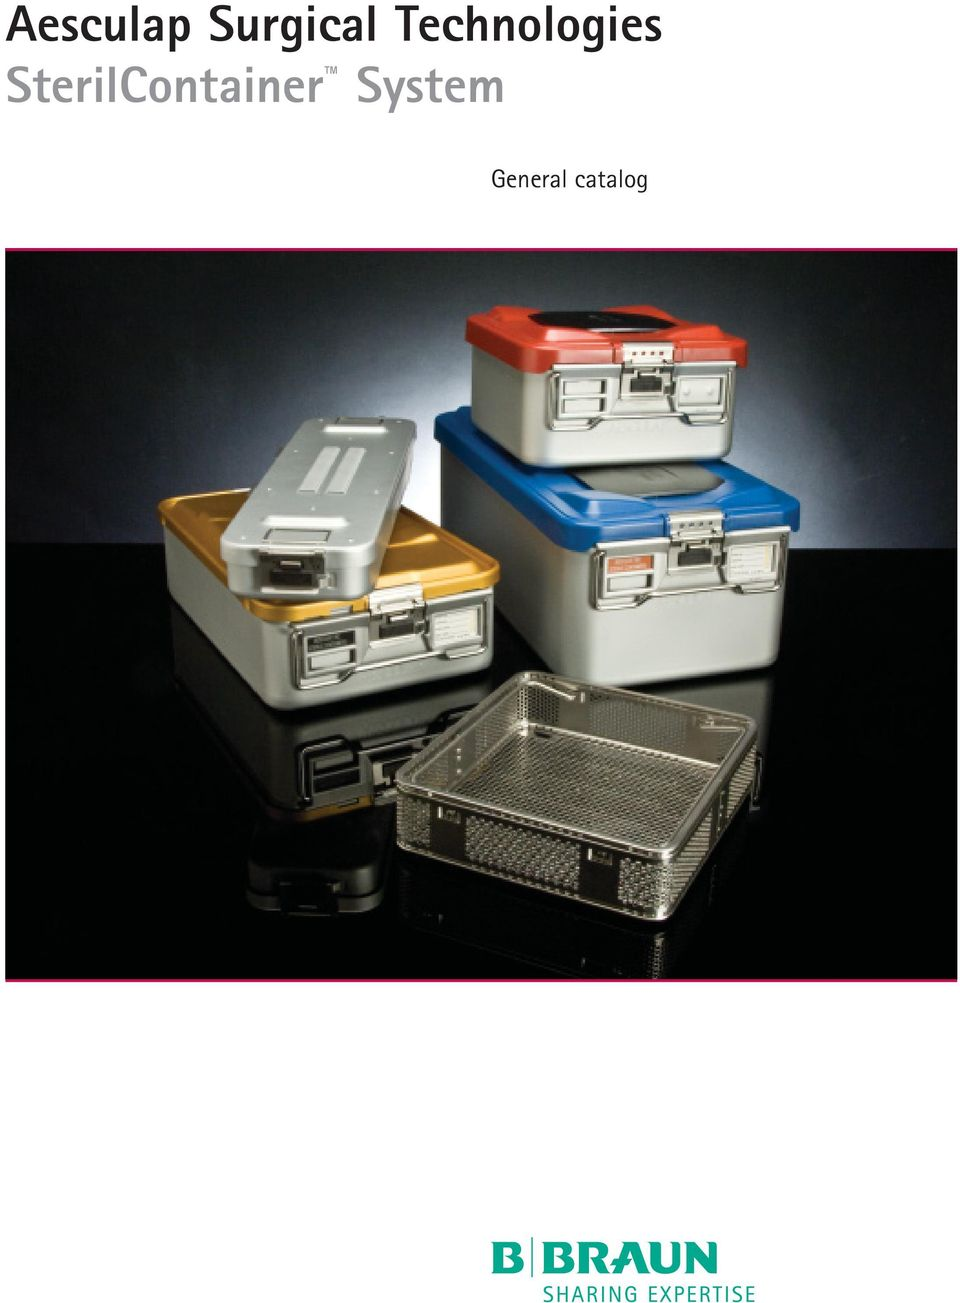 Aesculap Surgical Technologies SterilContainer System